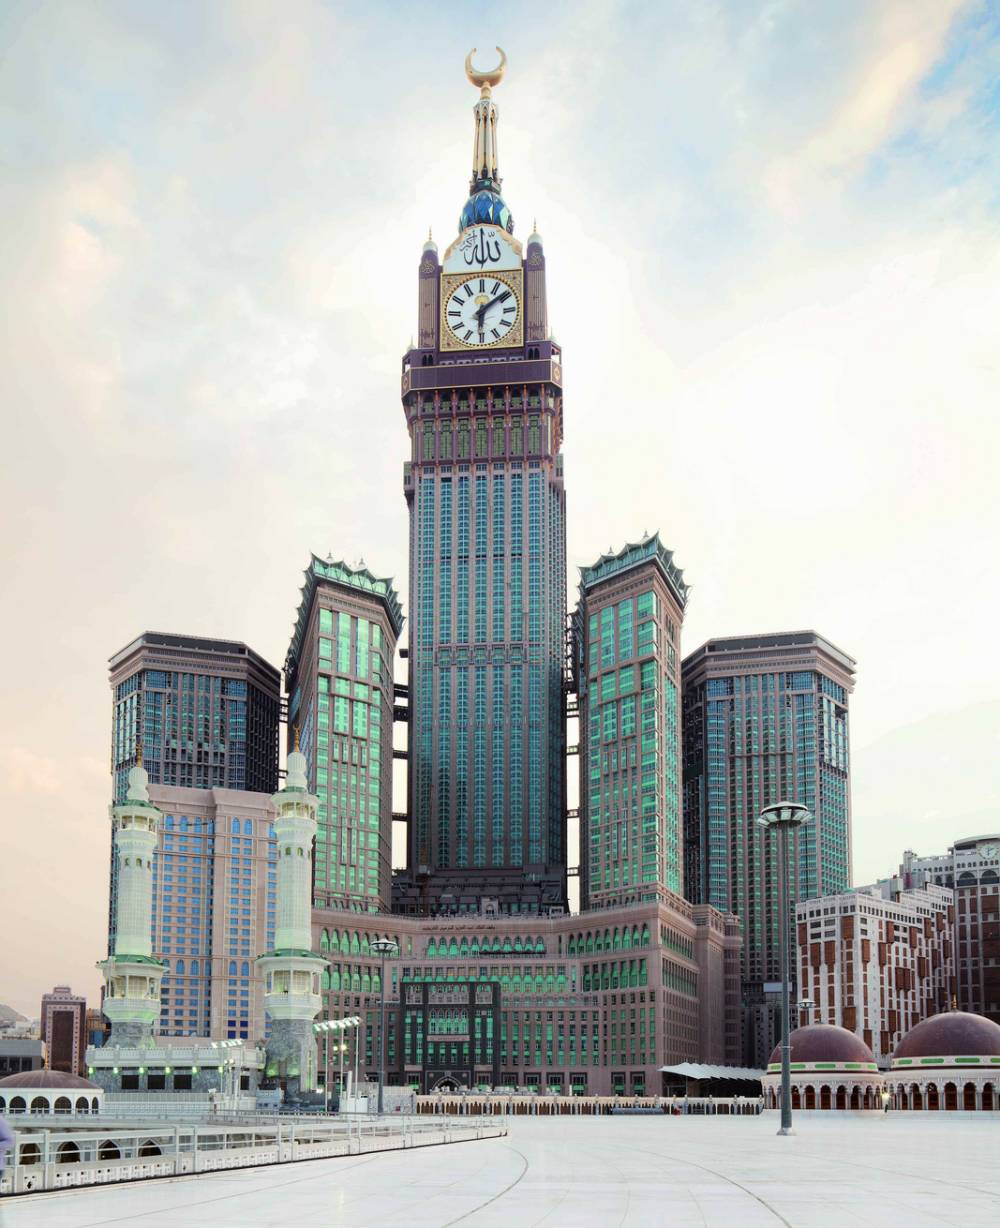 The Royal Clock Of Mecca